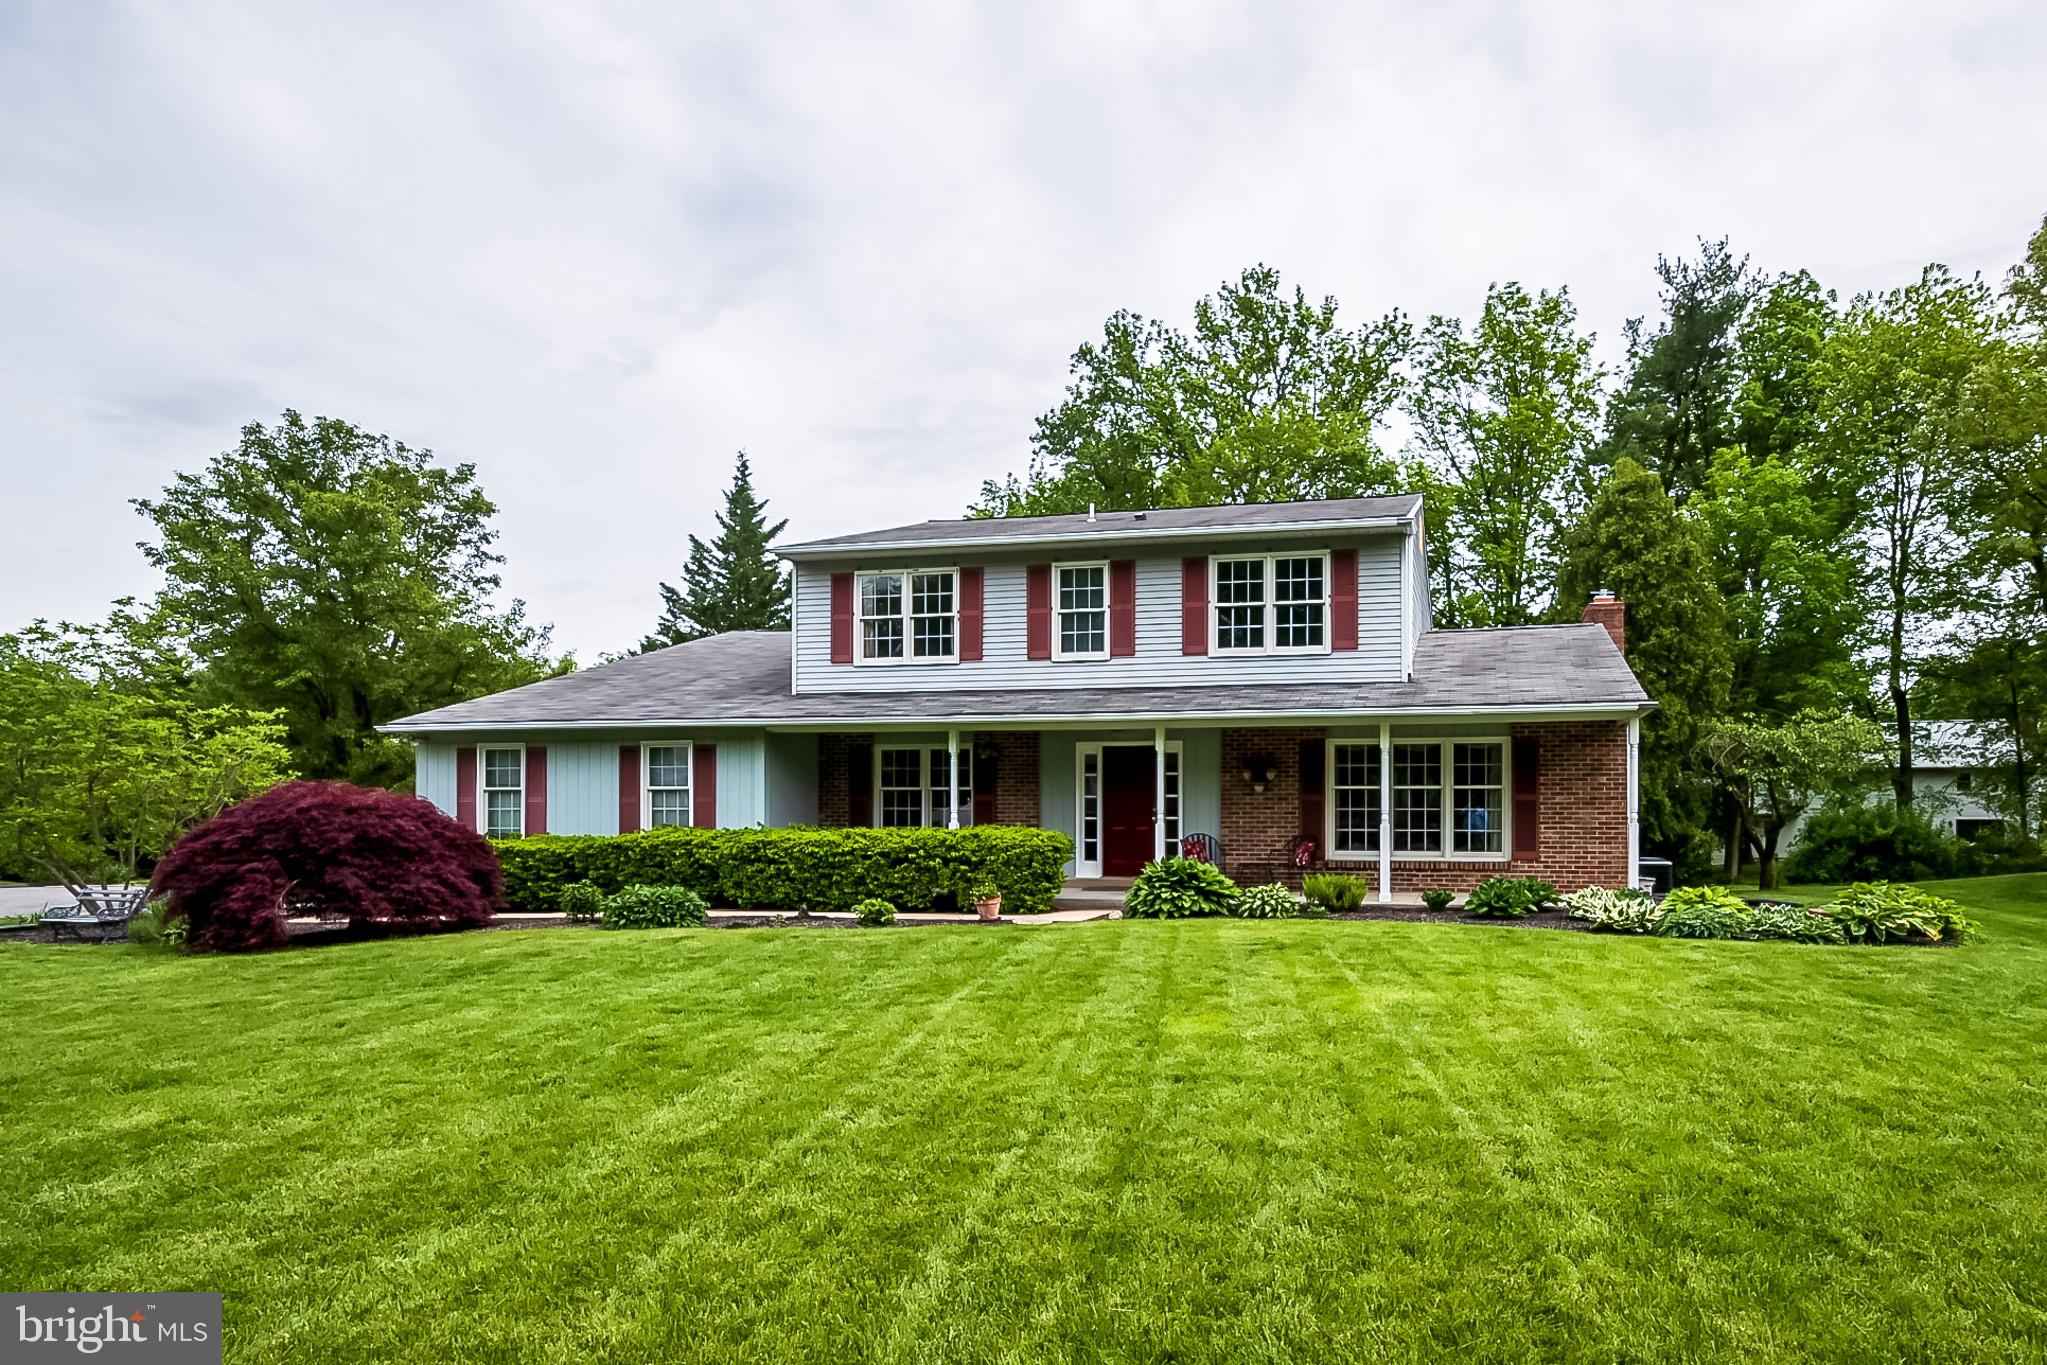 """Visit this home virtually: http://www.vht.com/434070673/IDXS - Welcome to 4508 Pebble Dr, a beautiful 4 bedroom, 2.1 bath Center Hall Colonial tucked away at the end of this quiet cul de sac in conveniently located Rockwood Woods in North Wilmington.This 2750 sq foot stunner has been meticulously maintained and upgraded with only the highest quality materials.Step from the charming front porch into the main foyer with hardwood floors. Glass French Doors open into the formal Living room that can easily double as an in home office or work out room. There is crown moldings and built in cabinets with lighting.Adjacent to the Living Room is the Formal Dining Room that opens into the awesomely updated Kitchen and breakfast area with its own fan/light. Tons of corian countertops, 42"""" oak cabinets that include lazy susans' and glass fronts to display your finest china. Newer GE Profile gas range, Whirlpool Refrigerator,Dishwasher and Disposal and numerous recessed lights. Double French Doors open onto the expansive Paver patio. There is an 18 x 13 Family room with a Brick fireplace and Anderson Sliding doors the open onto a newly resurfaced 18 x 15 deck. There is an actual main floor Laundry Room . There is a 30 x 20  room with a 12 foot ceiling  that was added and used a photography studio which could be easily converted into so many other uses..ie: in-law siute exercise room or home office; The southern wall has been framed to accomidate a 6 foot sliding glass door. It has its own HVAC system and Out side entrance. The master Suite can accomodate any size furniture There is an expansive walk-in closet and a completely remodeled from the walls in a Master bath with tiled walls and flooring and a walk-in shower and a quartz sink. The other 3 bedrooms are very nicely sized. The white hall bath has a tub and shower combination and tiled flooring. The basement has had a French Drain installed with a sump pump.Other quality upgrades include Anderson Windows,  25 years shingle i"""